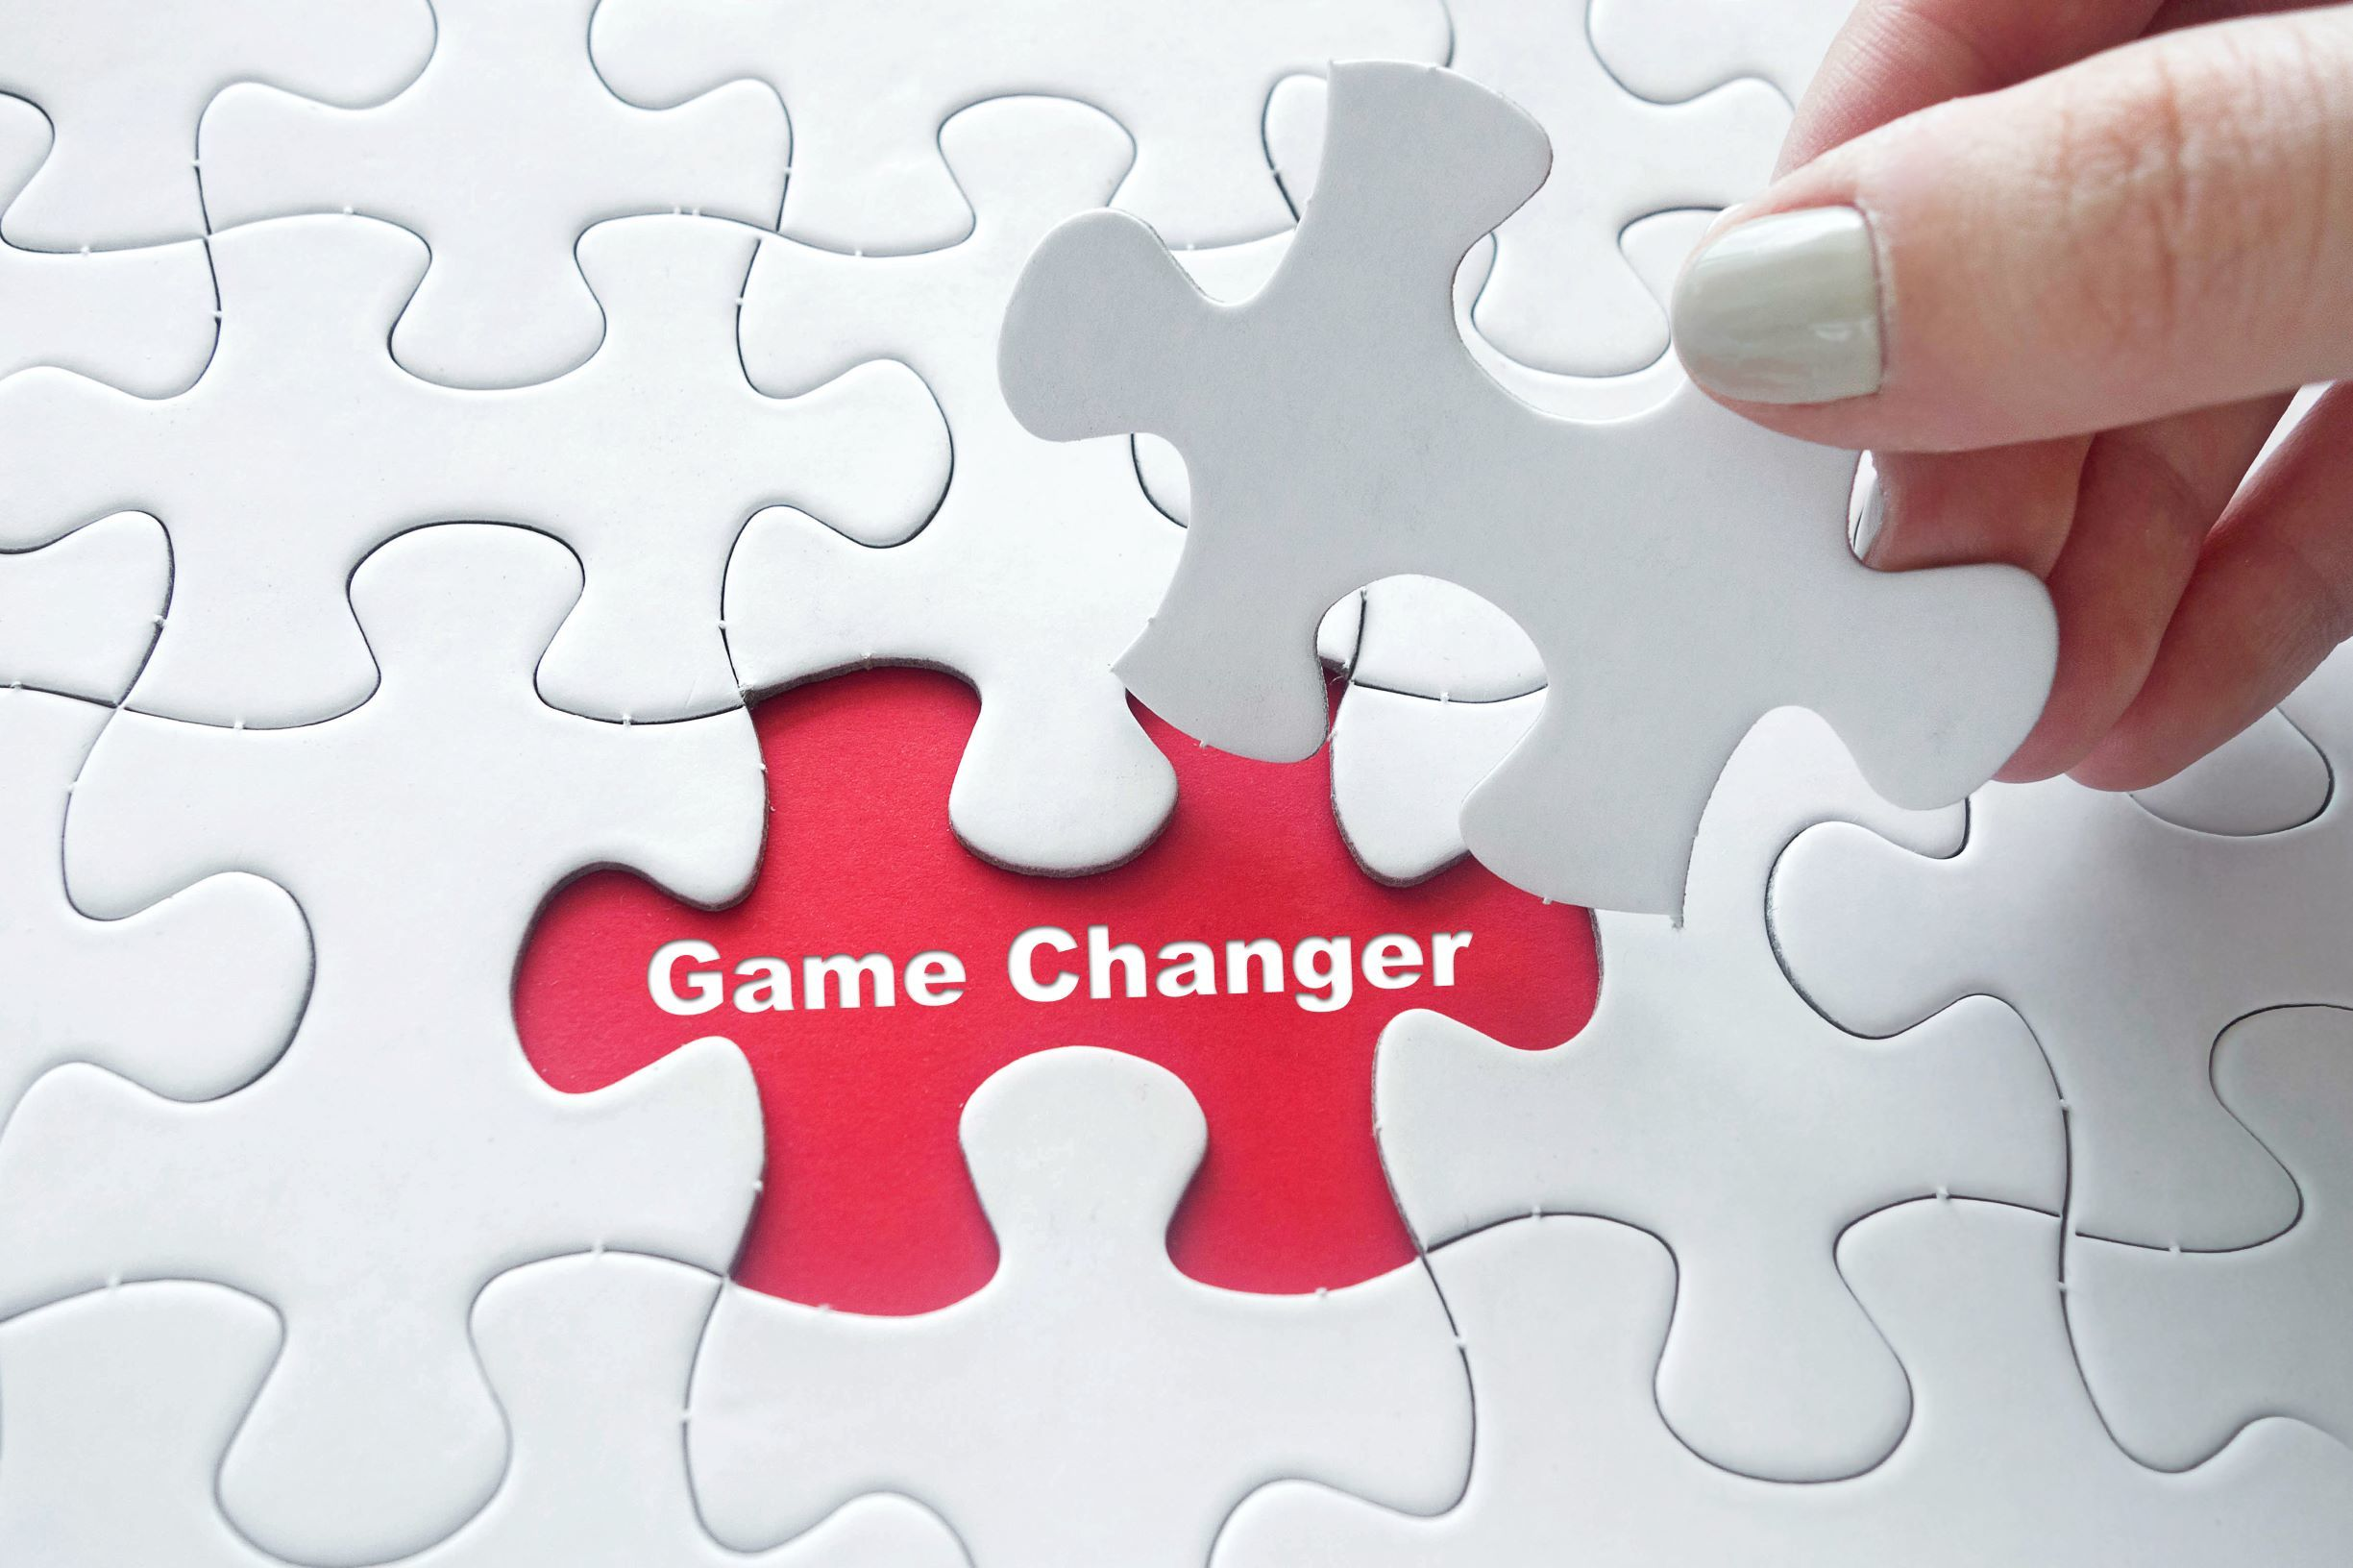 SEO can Be a Game Changer